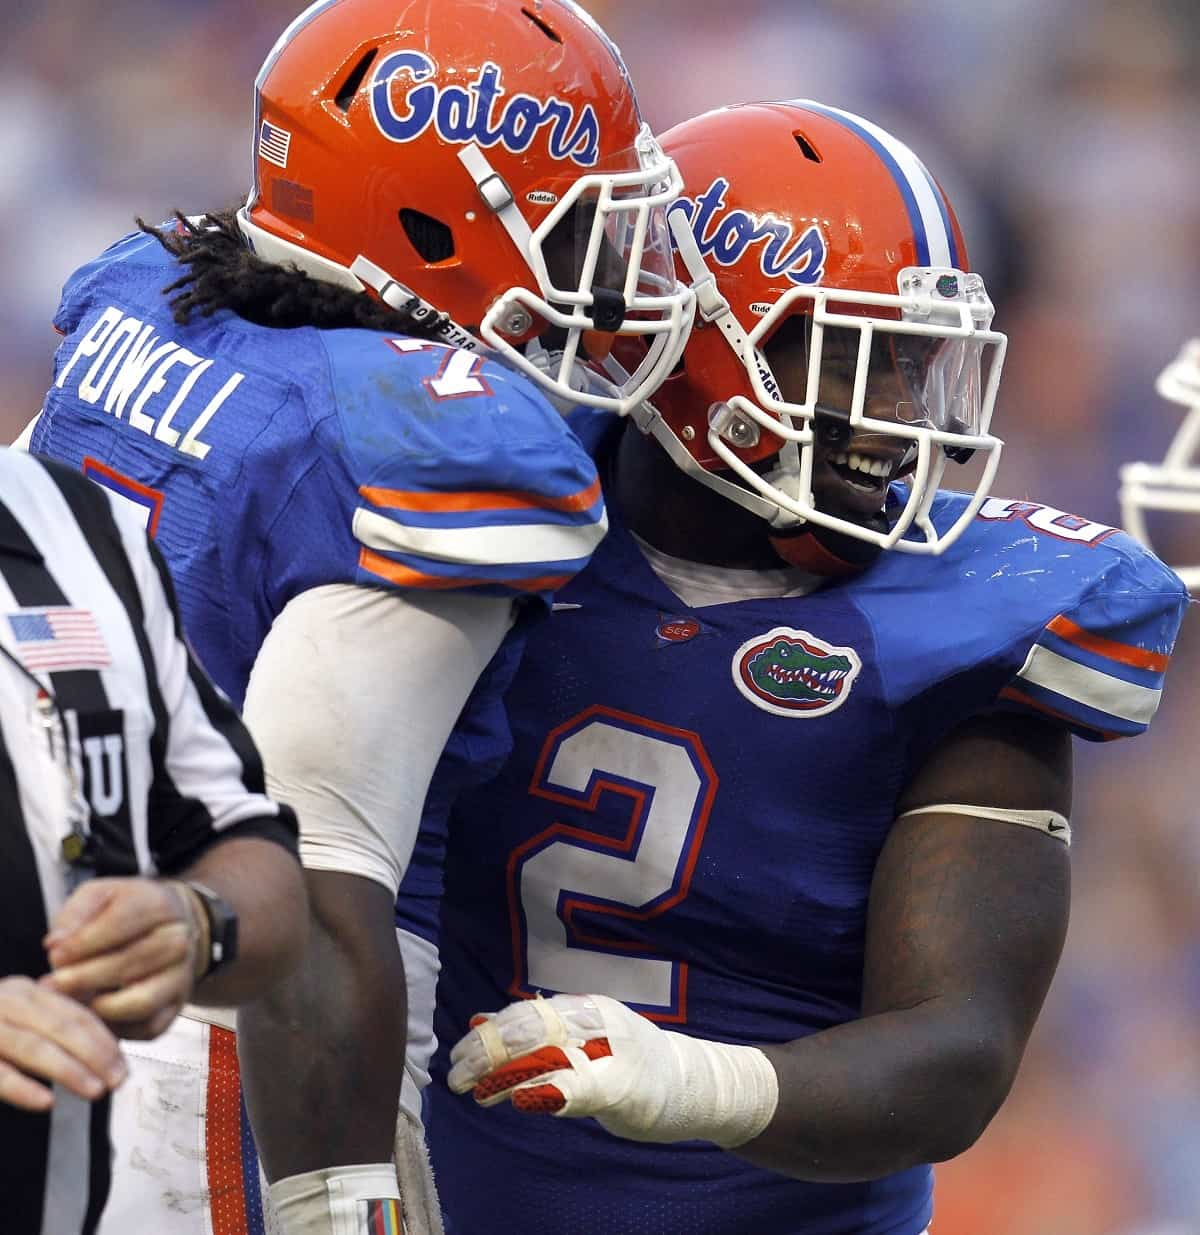 Florida linebacker Ronald Powell and defensive tackle Dominique Easley will share the field once again this season.